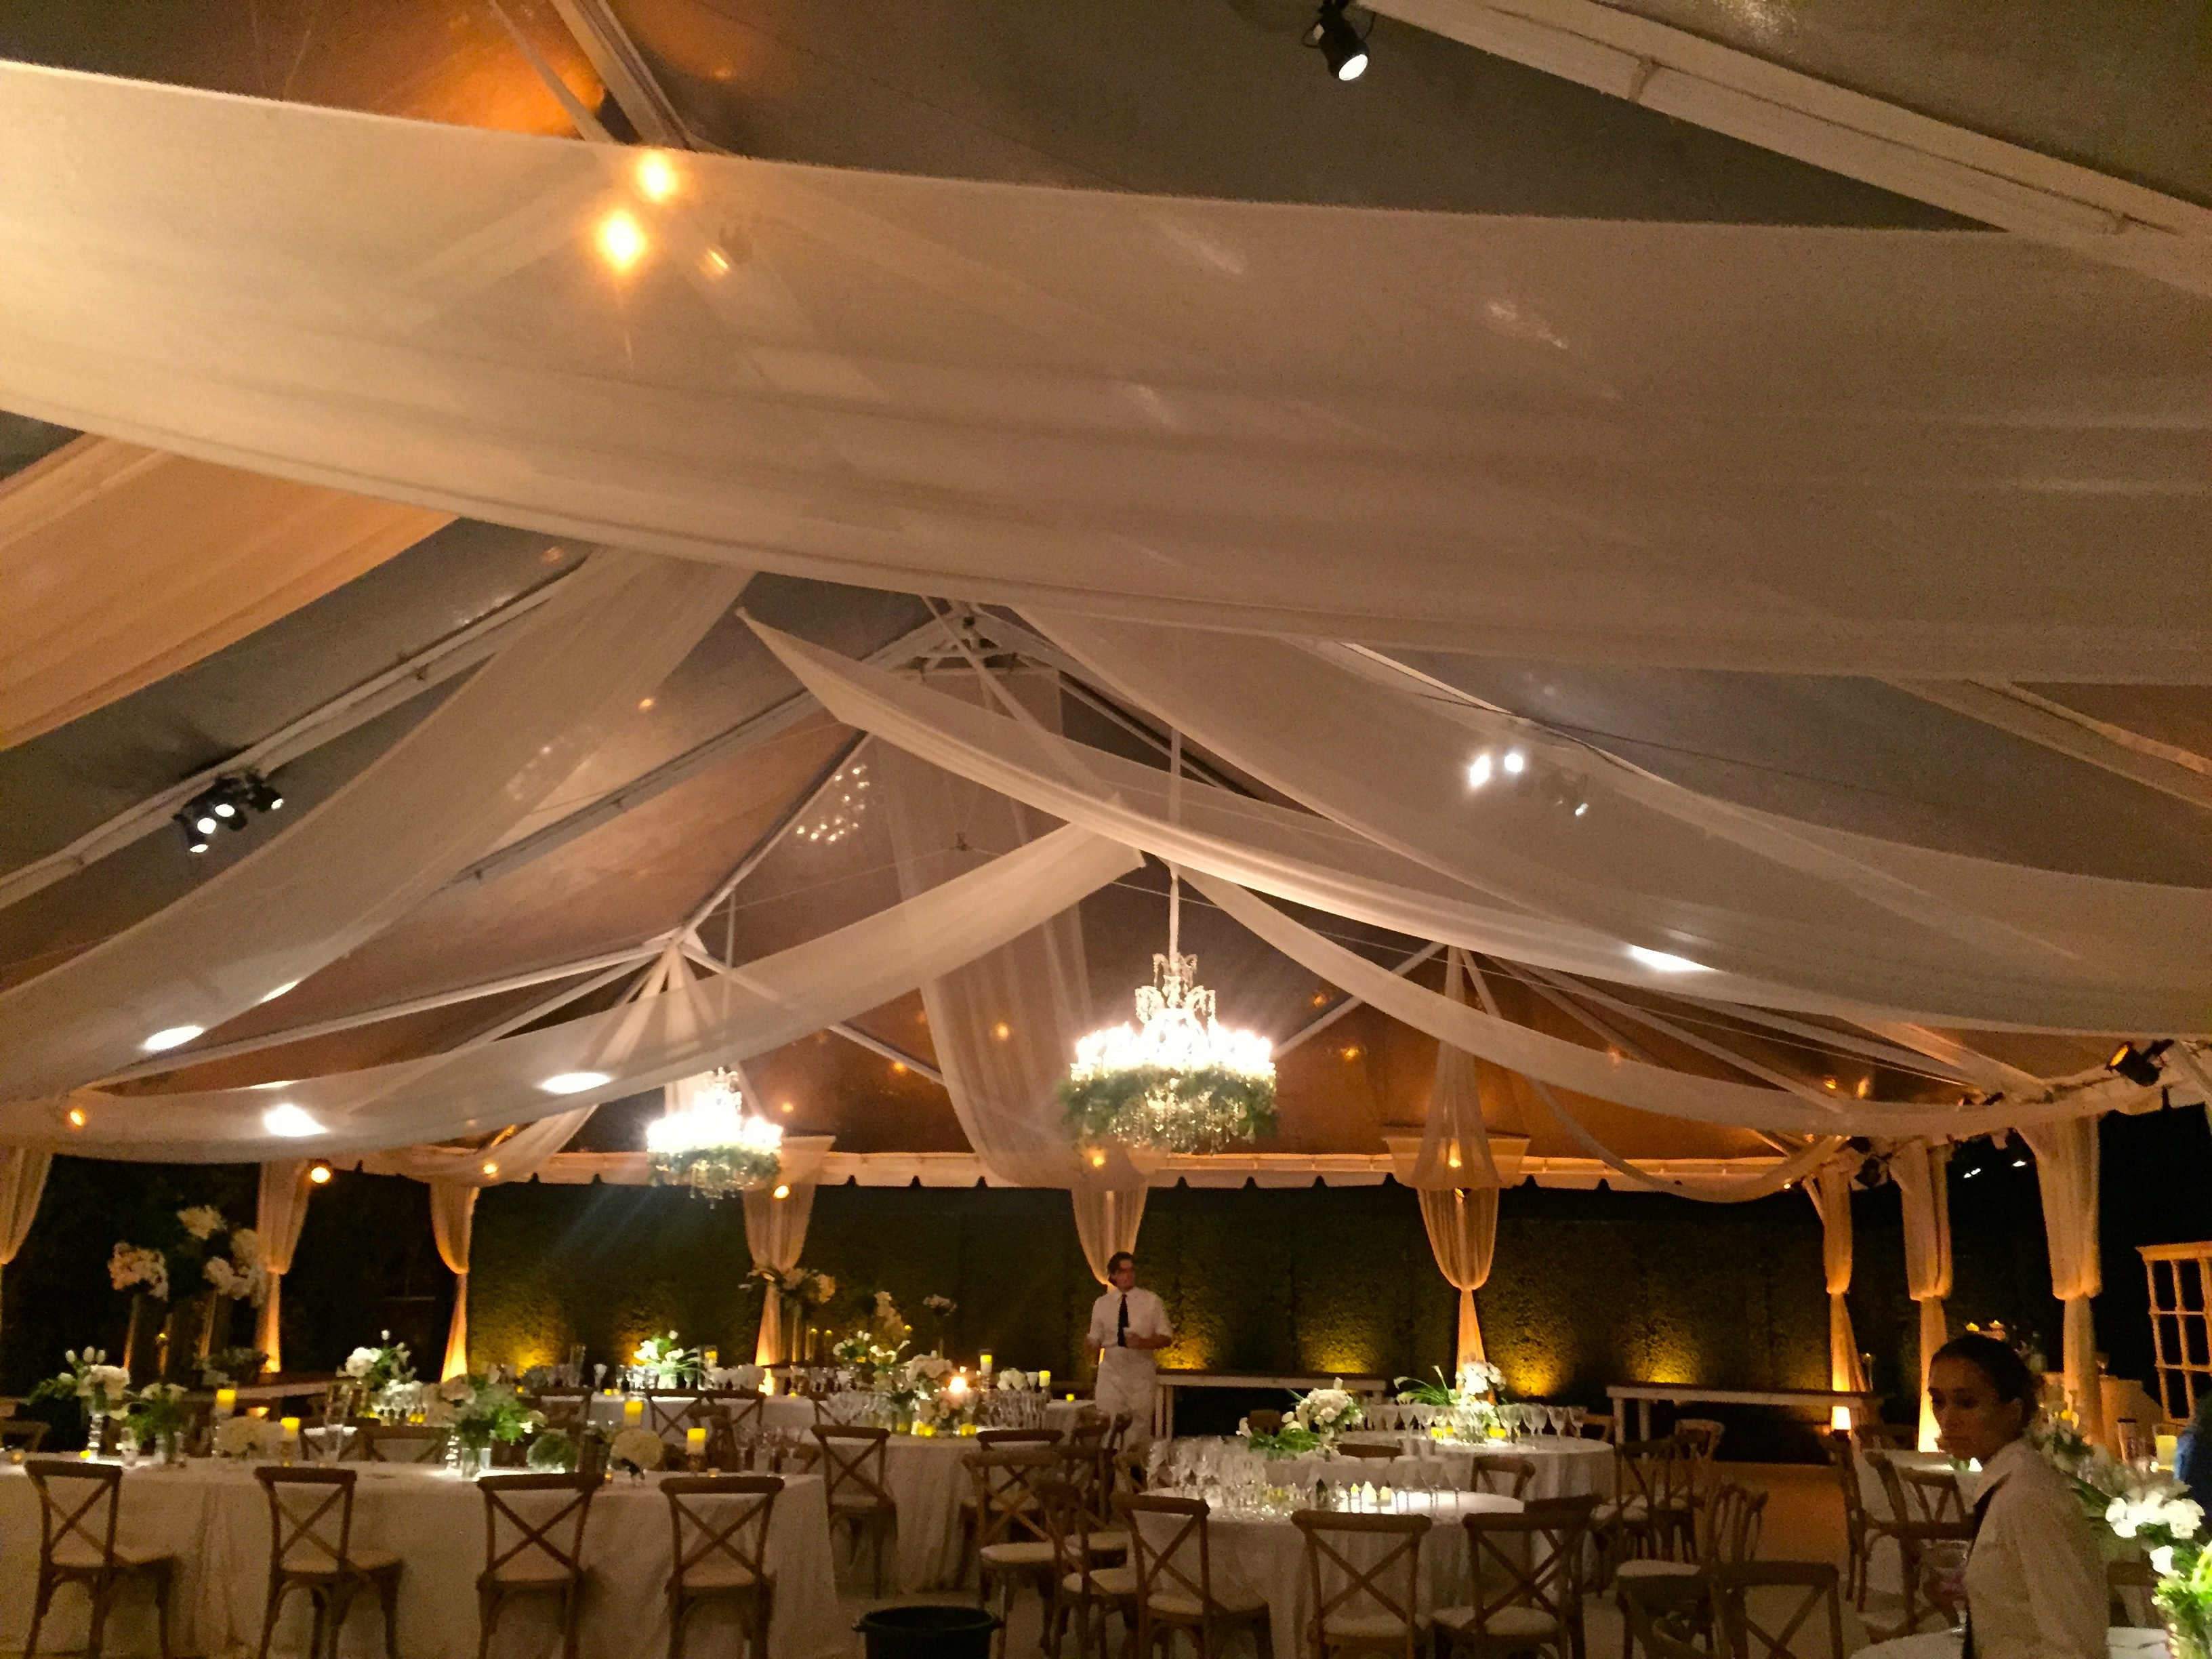 pin products drapes to ceiling events drape wedding party sequential light hang event how led white string for